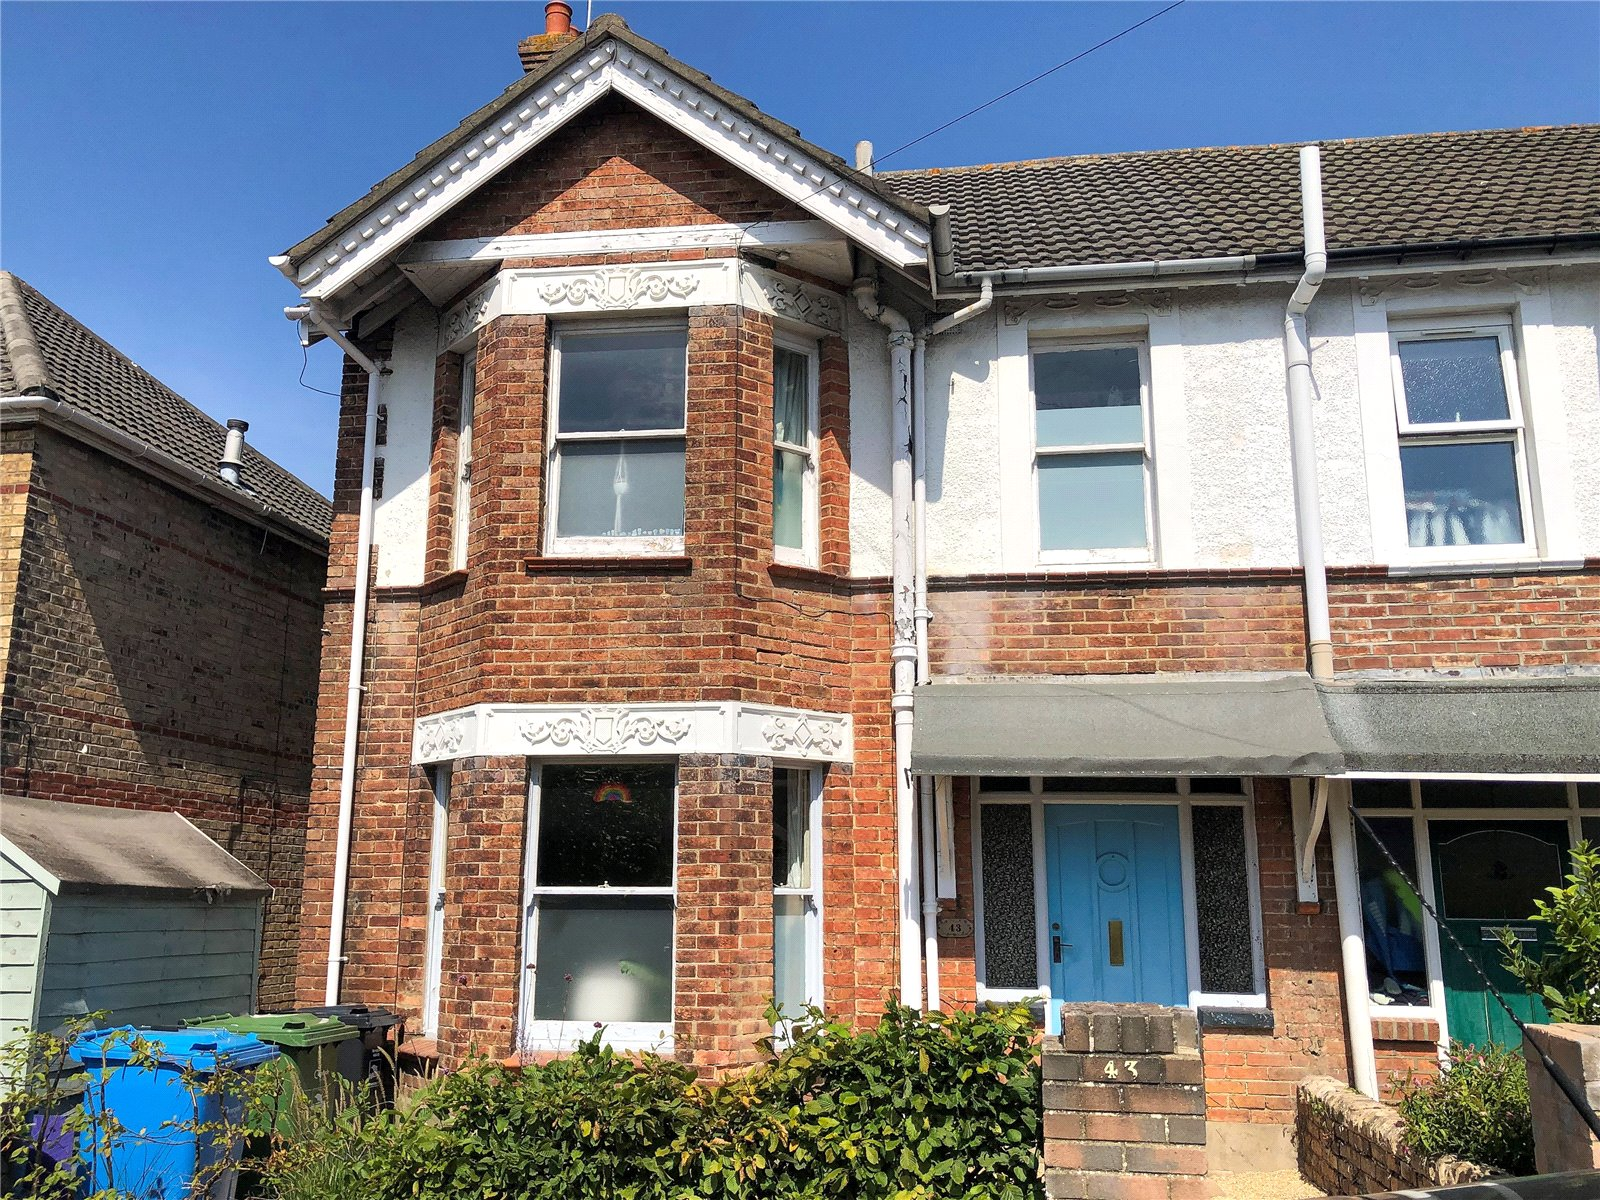 3 bed house for sale in North Road, Lower Parkstone, BH14